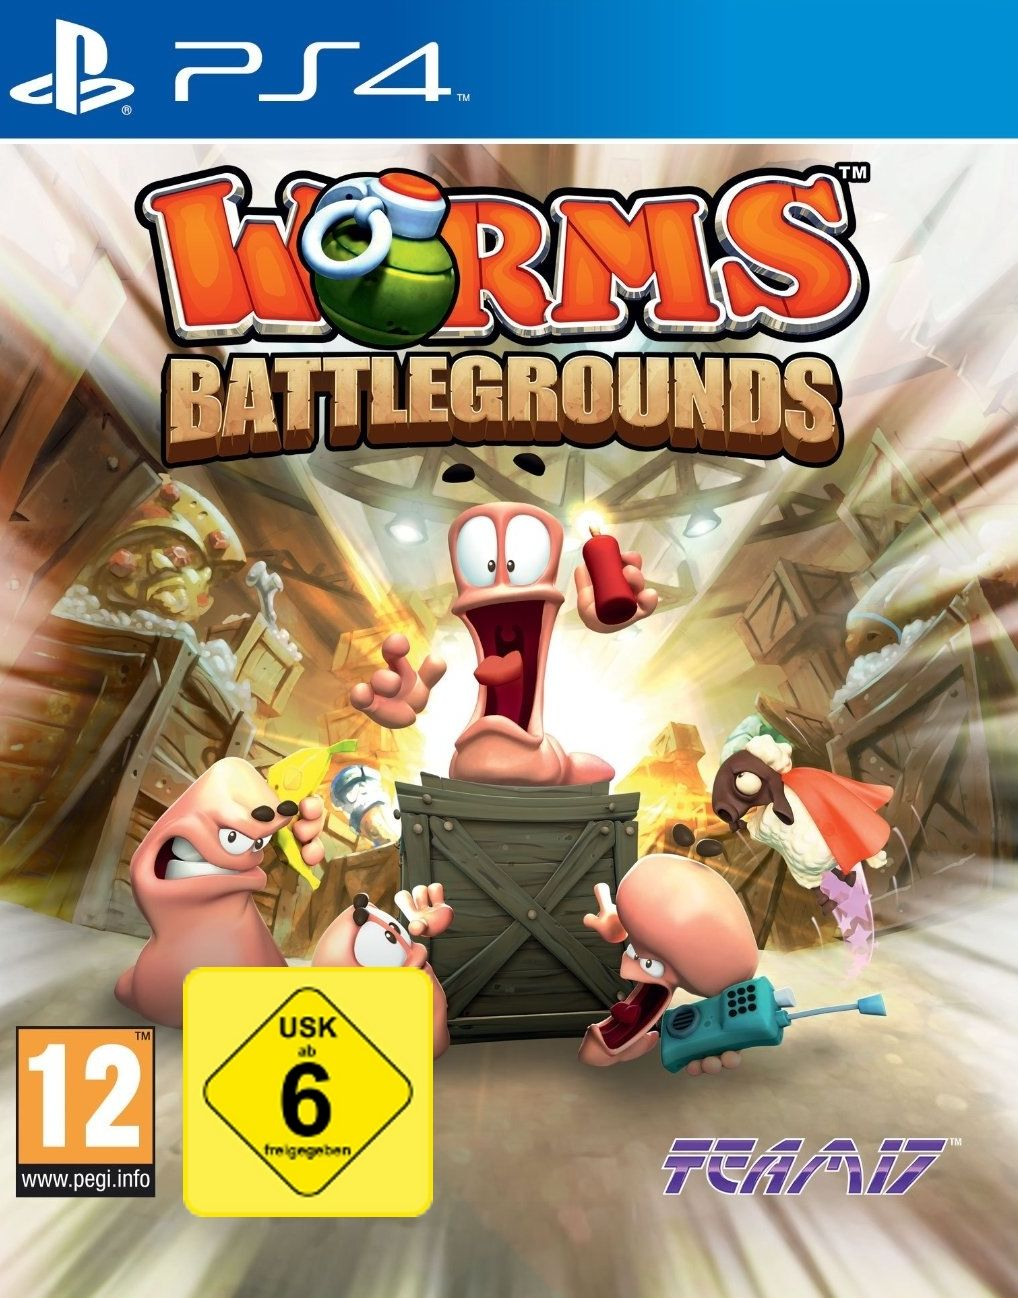 PS4 Spiel Worms Battlegrounds Neu&OVP Playstation 4